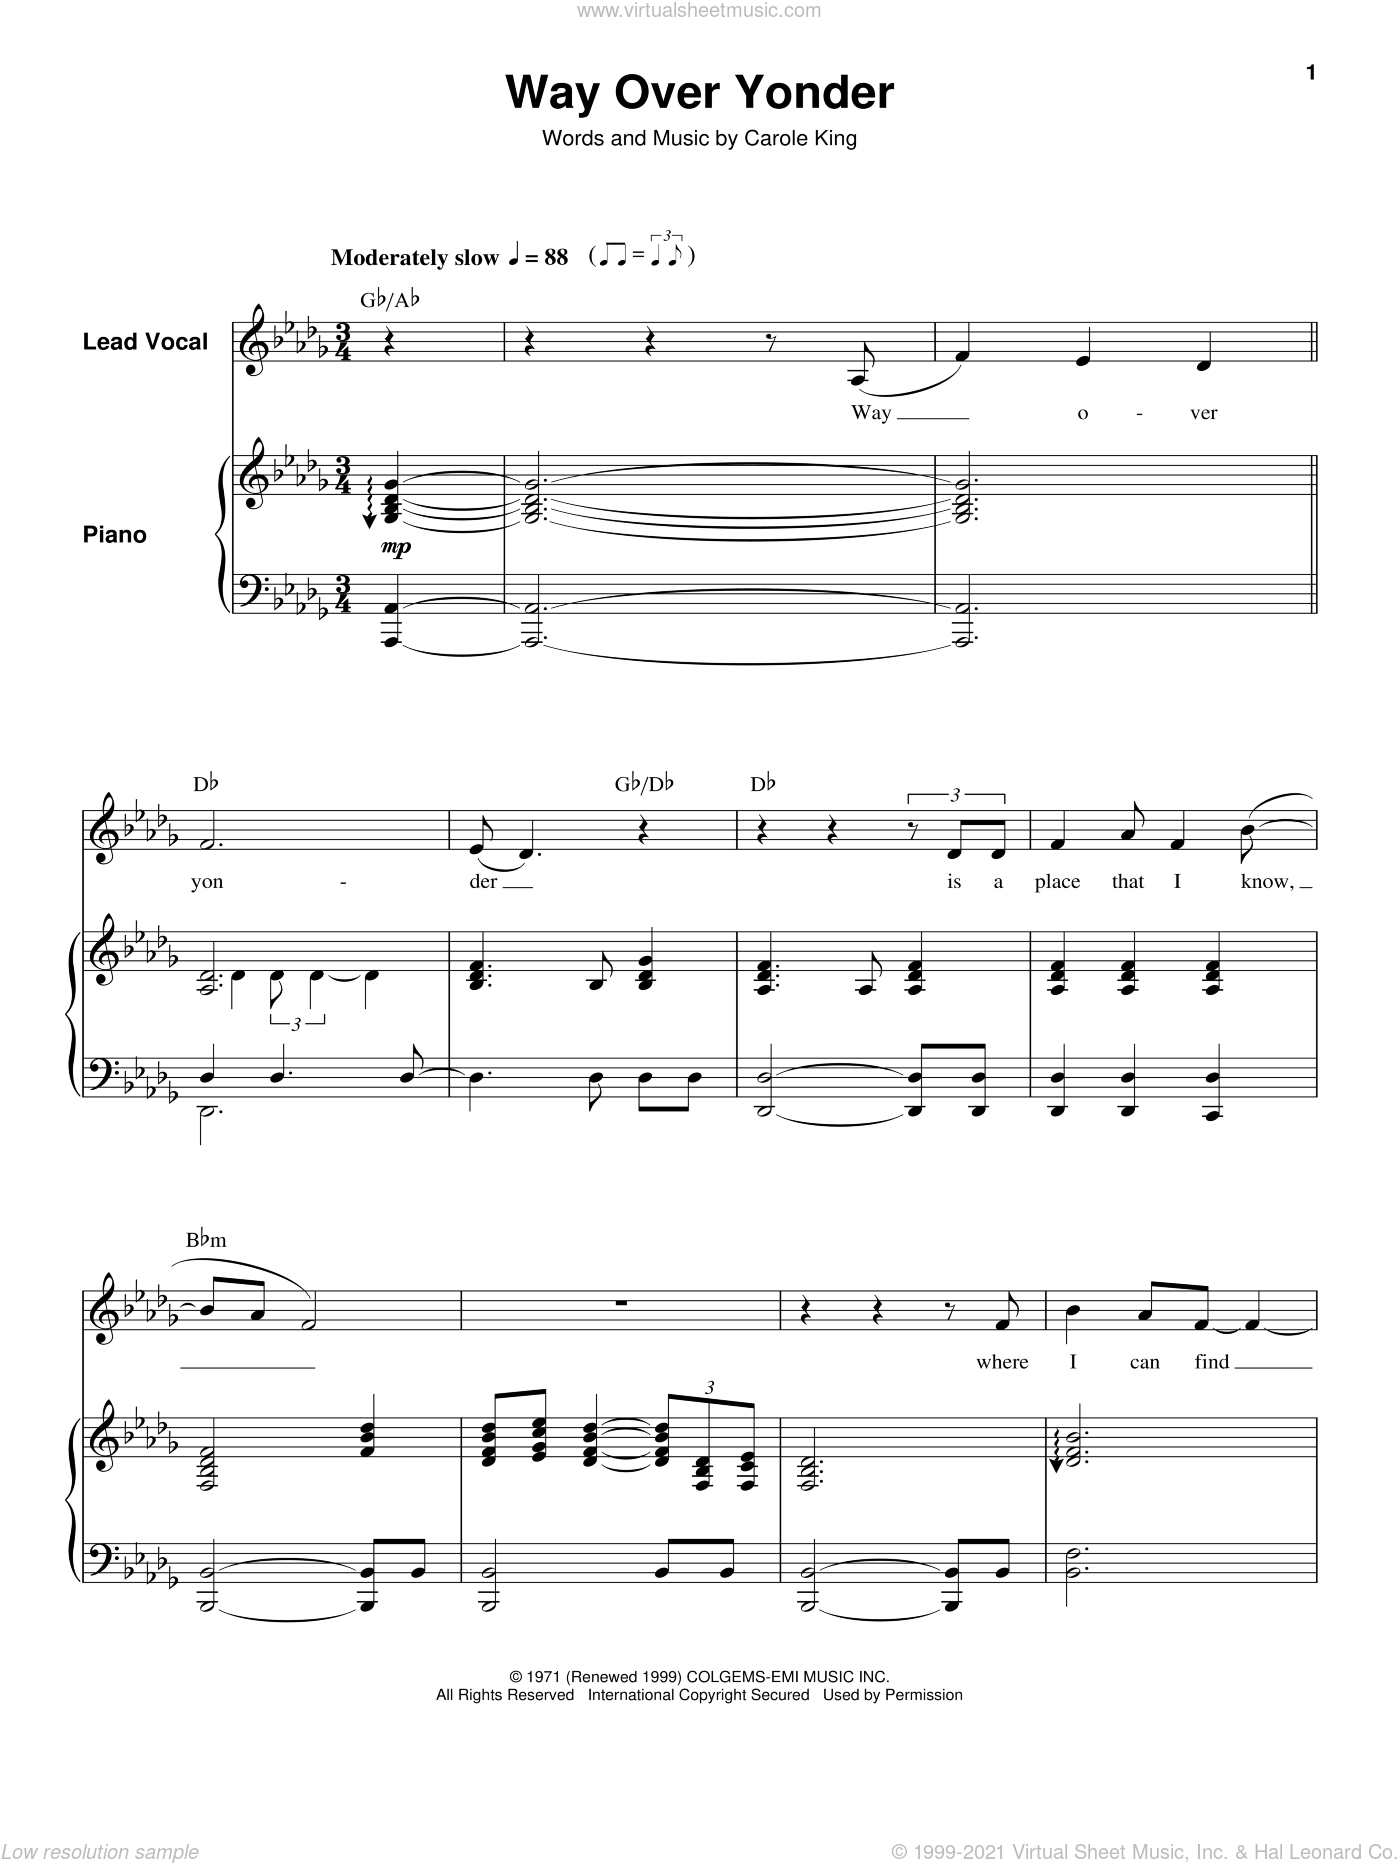 Way Over Yonder sheet music for keyboard or piano by Carole King, intermediate skill level